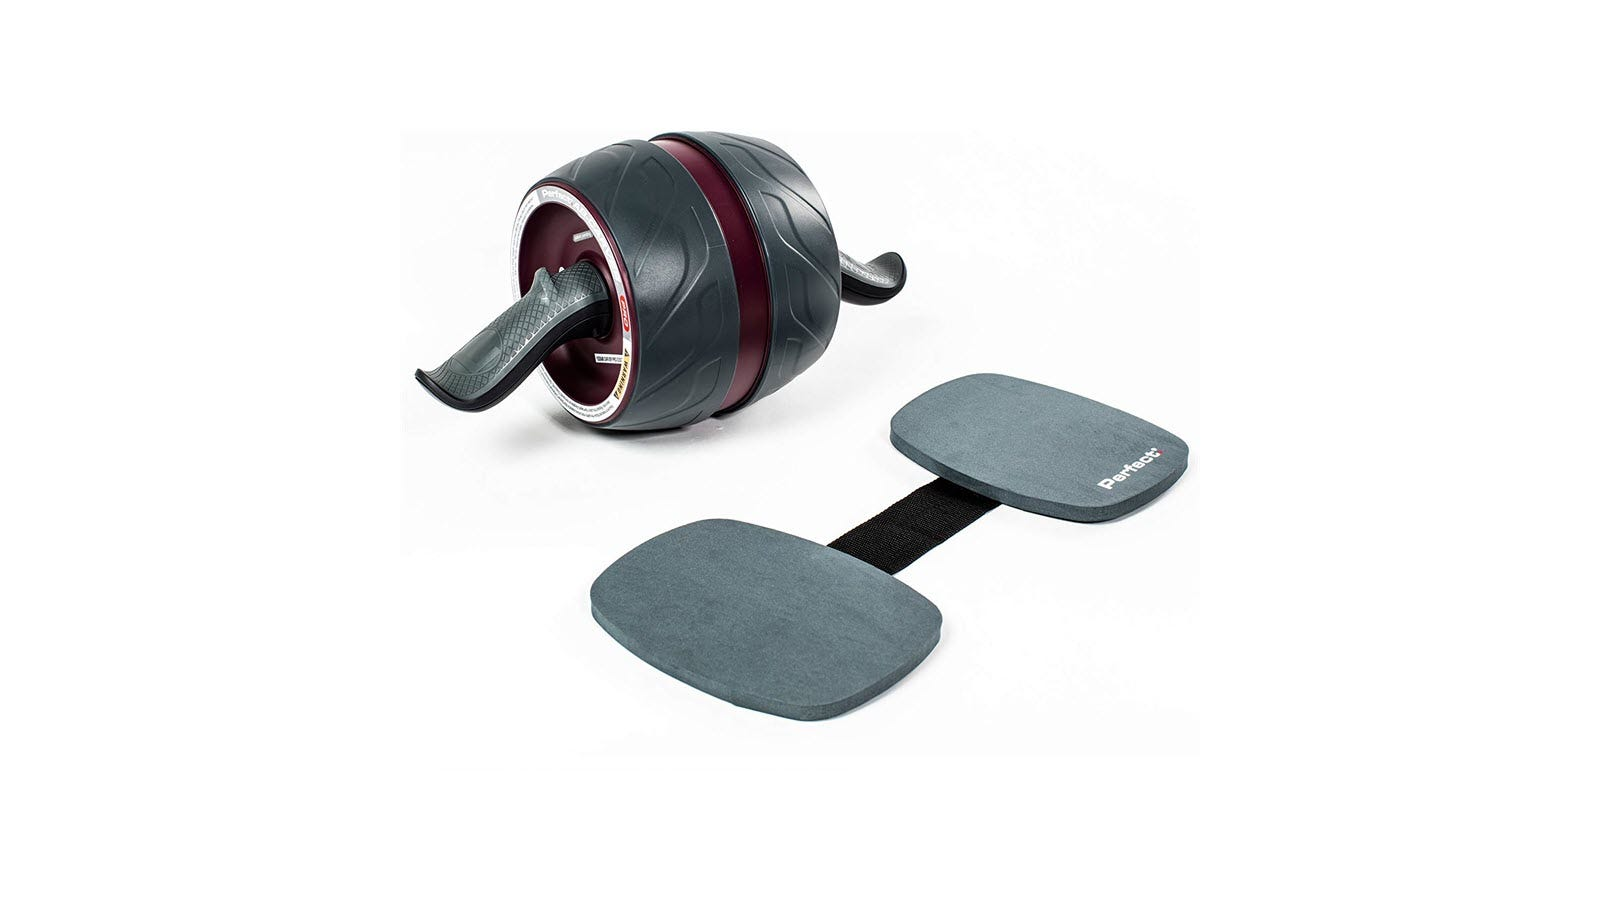 The Perfect Fitness Ab Carver Pro Roller and two kneepads connected with a strap.